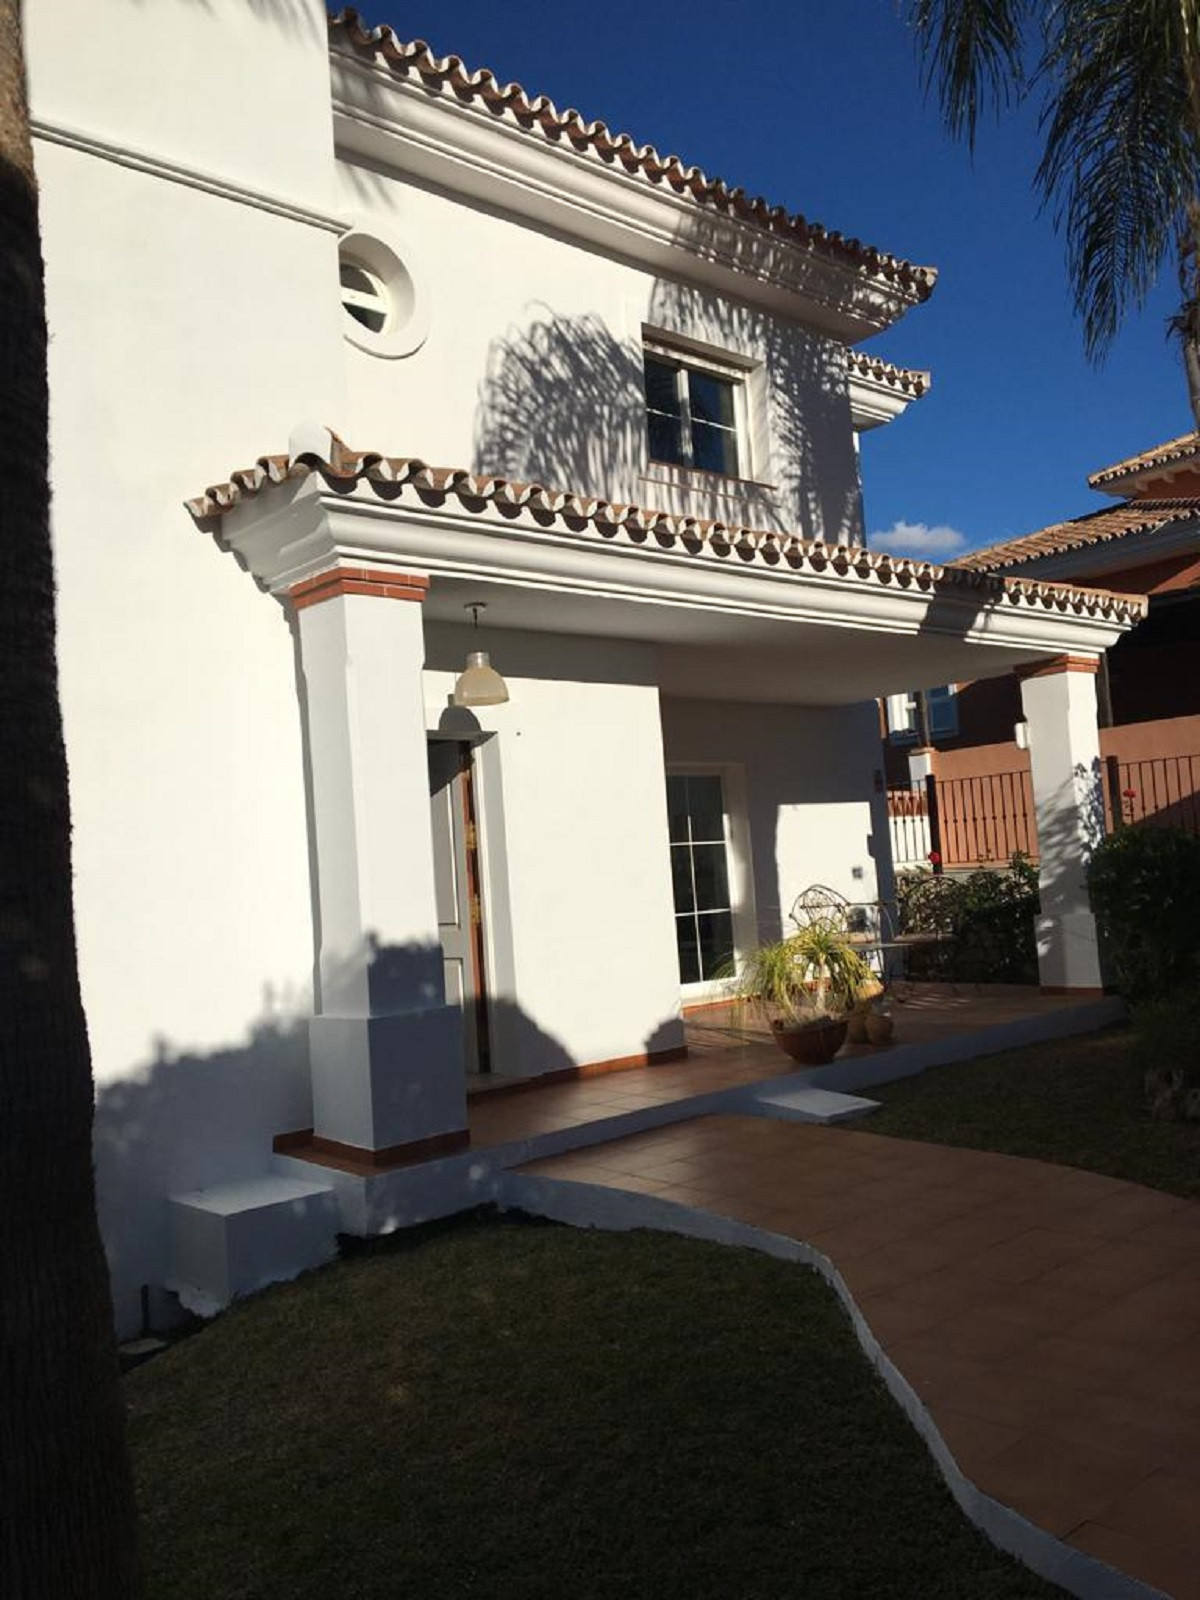 Wonderful 4 bedroom house with 280 sq.mts. built in 3 floors. Just walked in we find at the left han, Spain